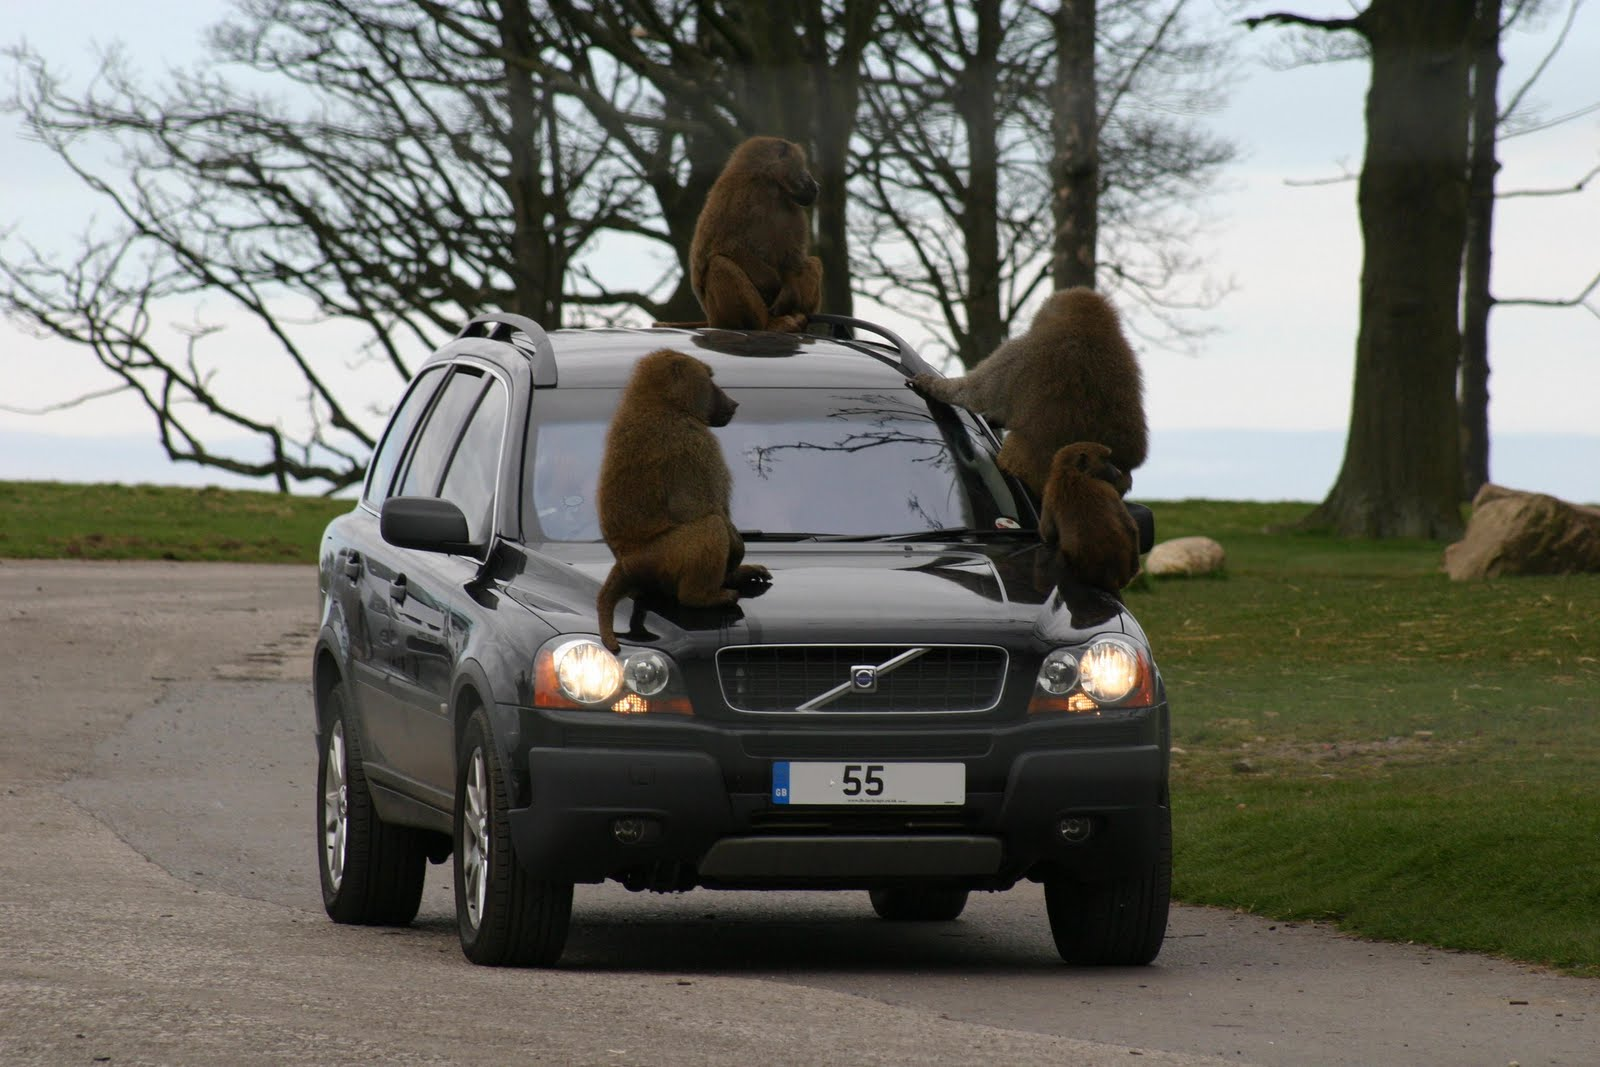 monkey+on+car.jpg